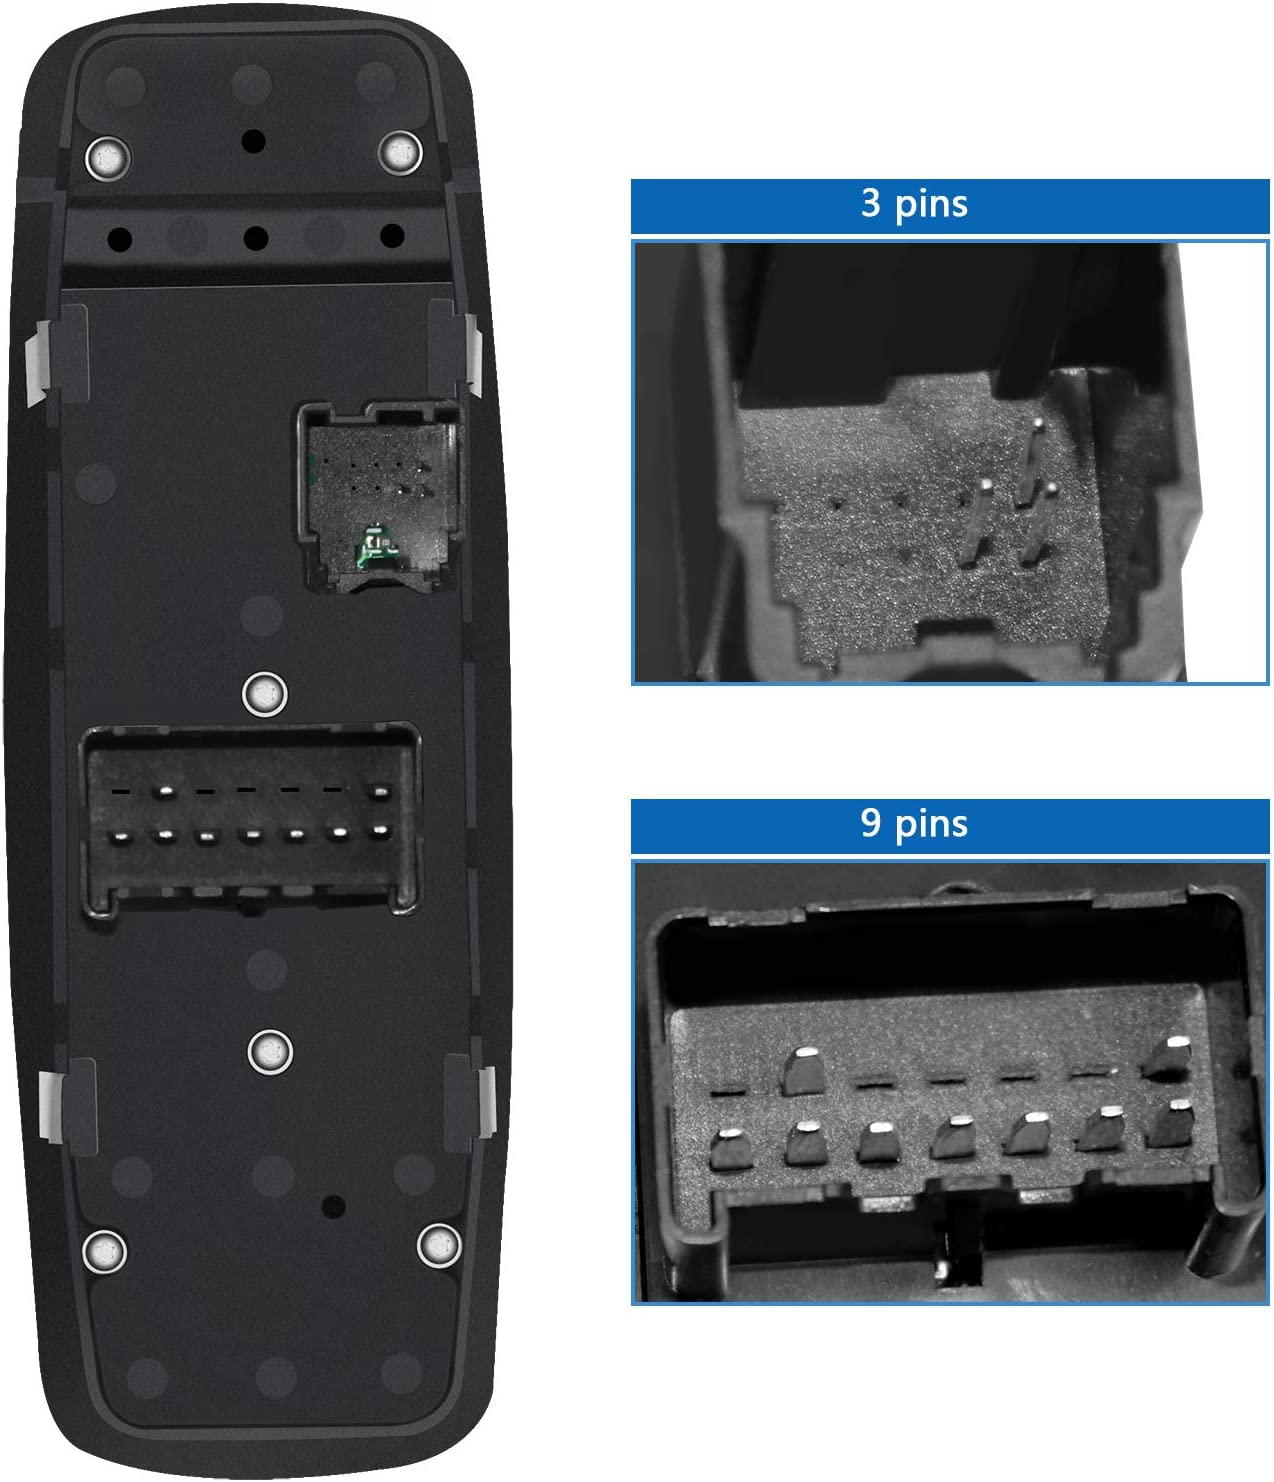 Master Power Window Switch Front Left Driver Side 9+3 Prong Compatible for 2009-2012 Dodge Ram 1500 2500 3500 Replace for 4602863AD 4602863AB 4602863AC